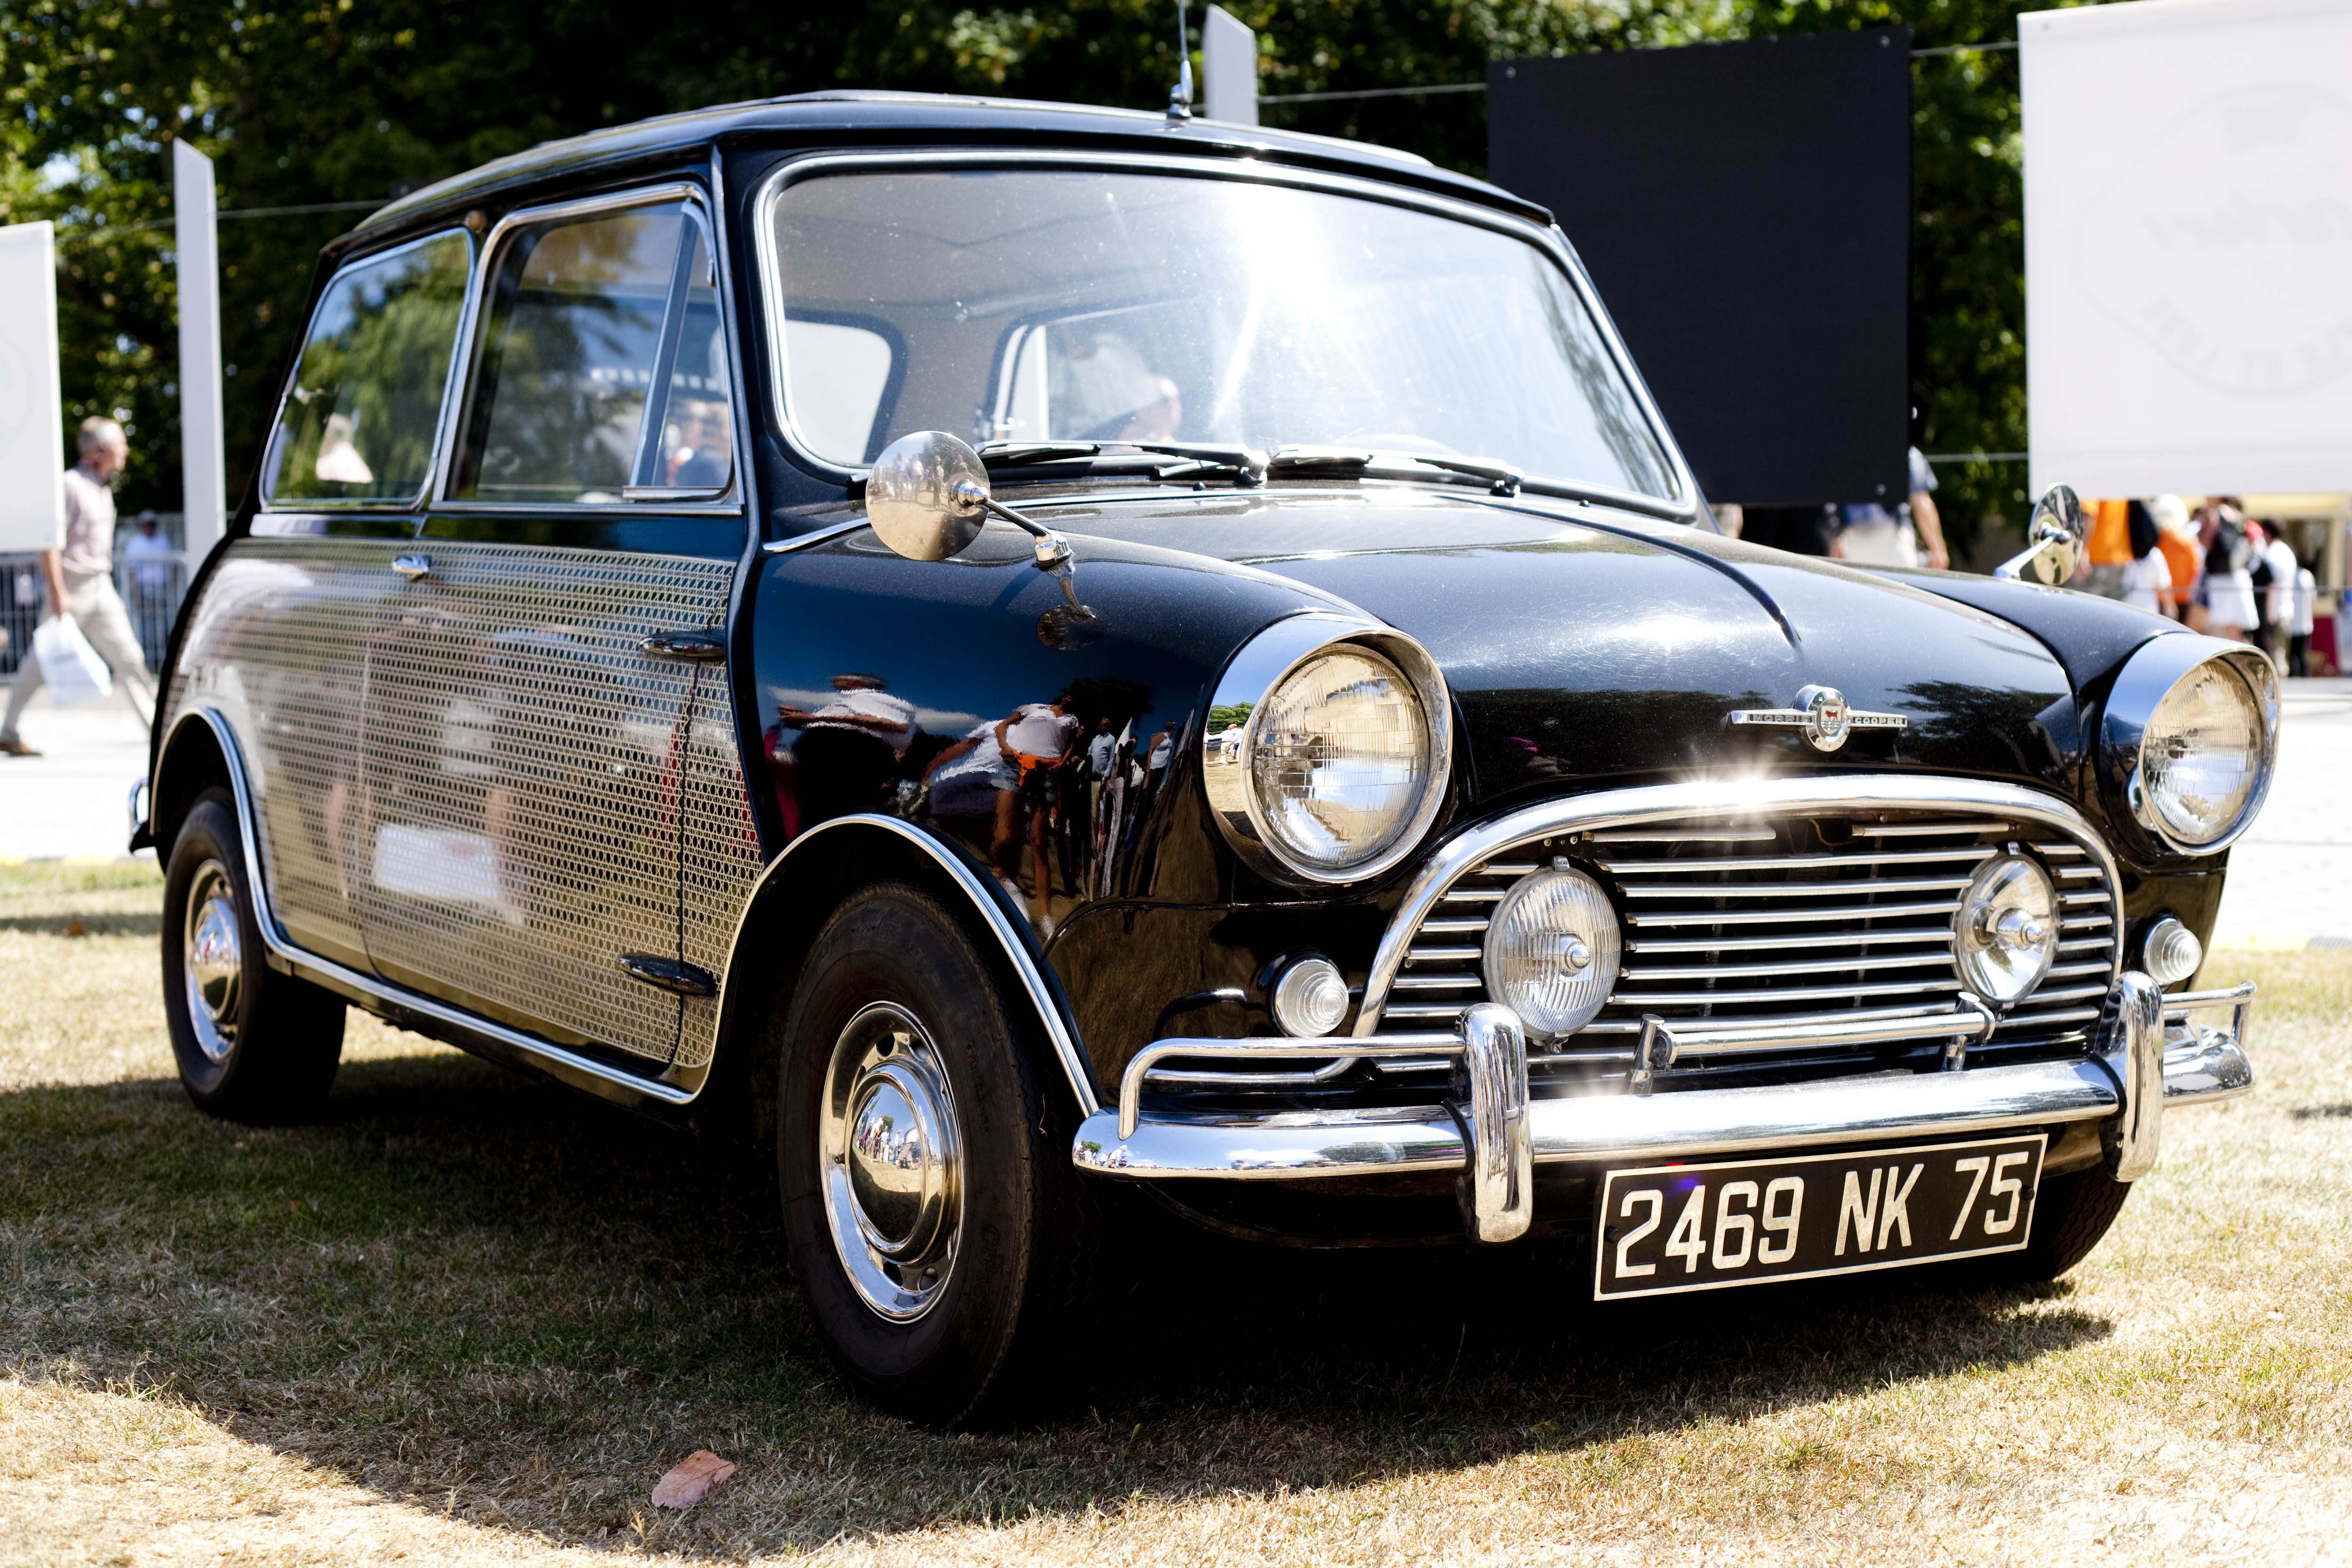 Peter Sellars's mini exemplified sixties automotive style.